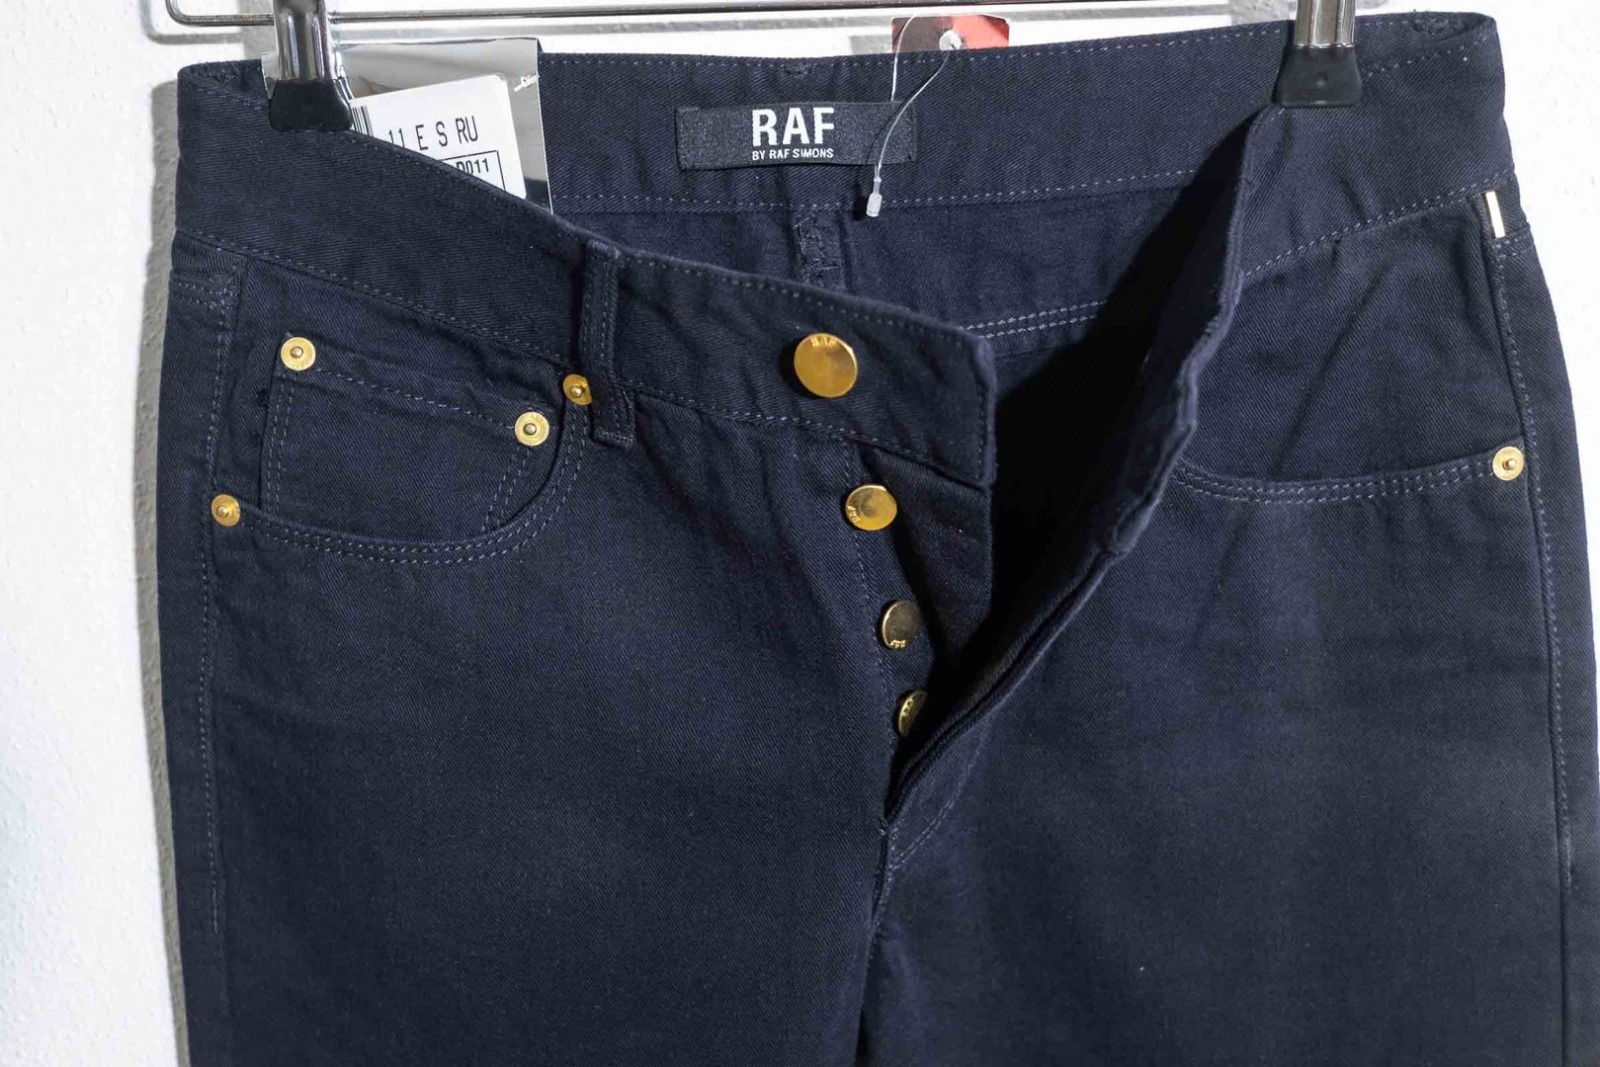 RAF Denim Slim-Fit - 6